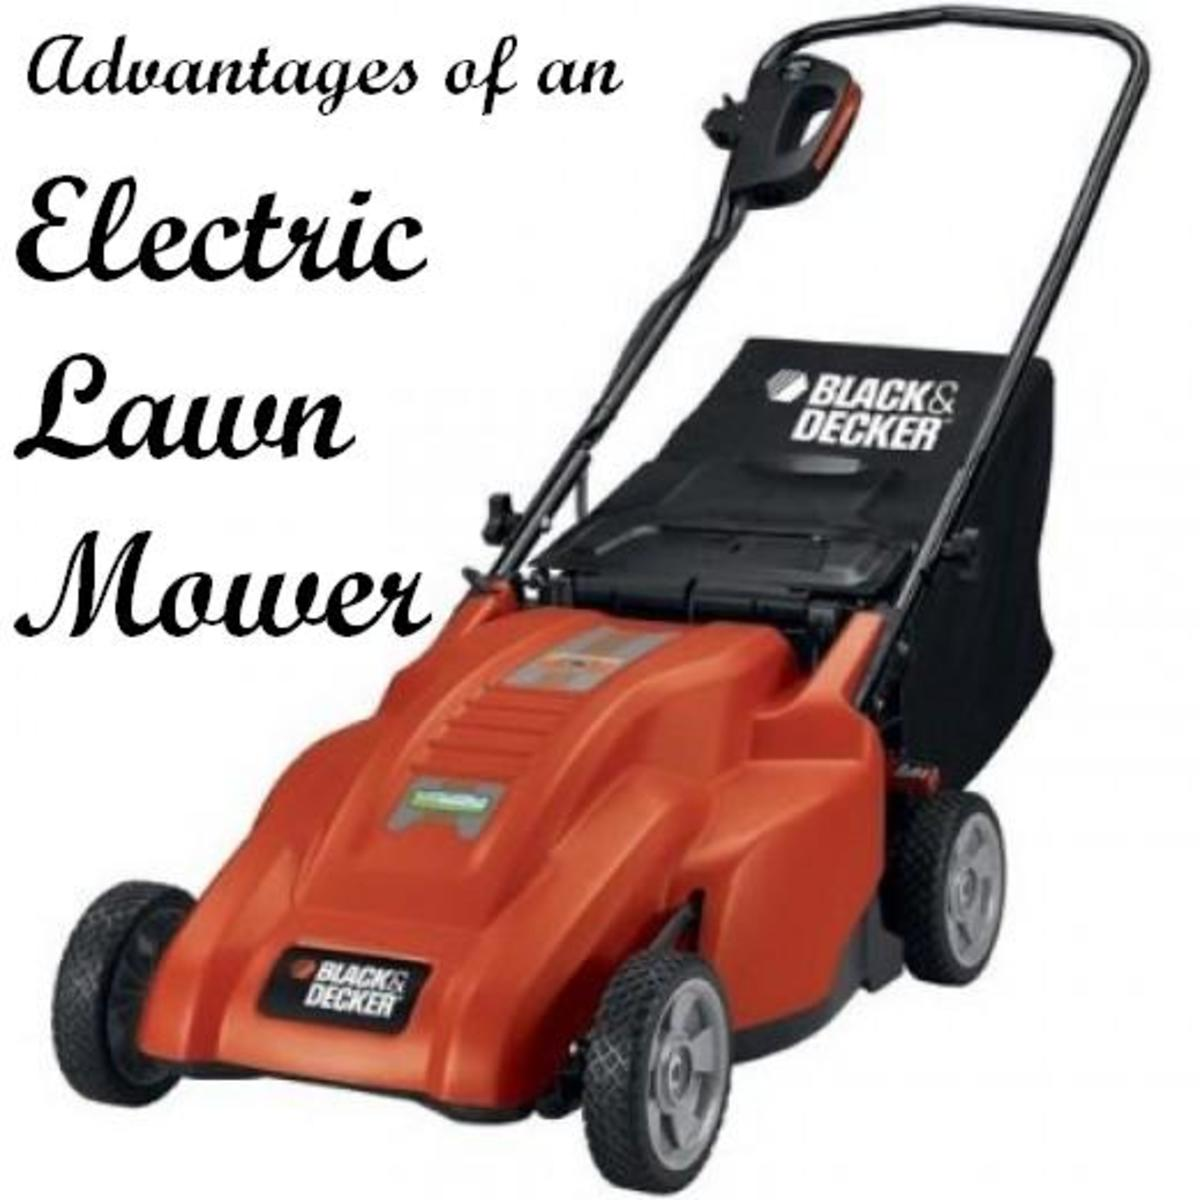 Advantages of an Electric Lawnmower